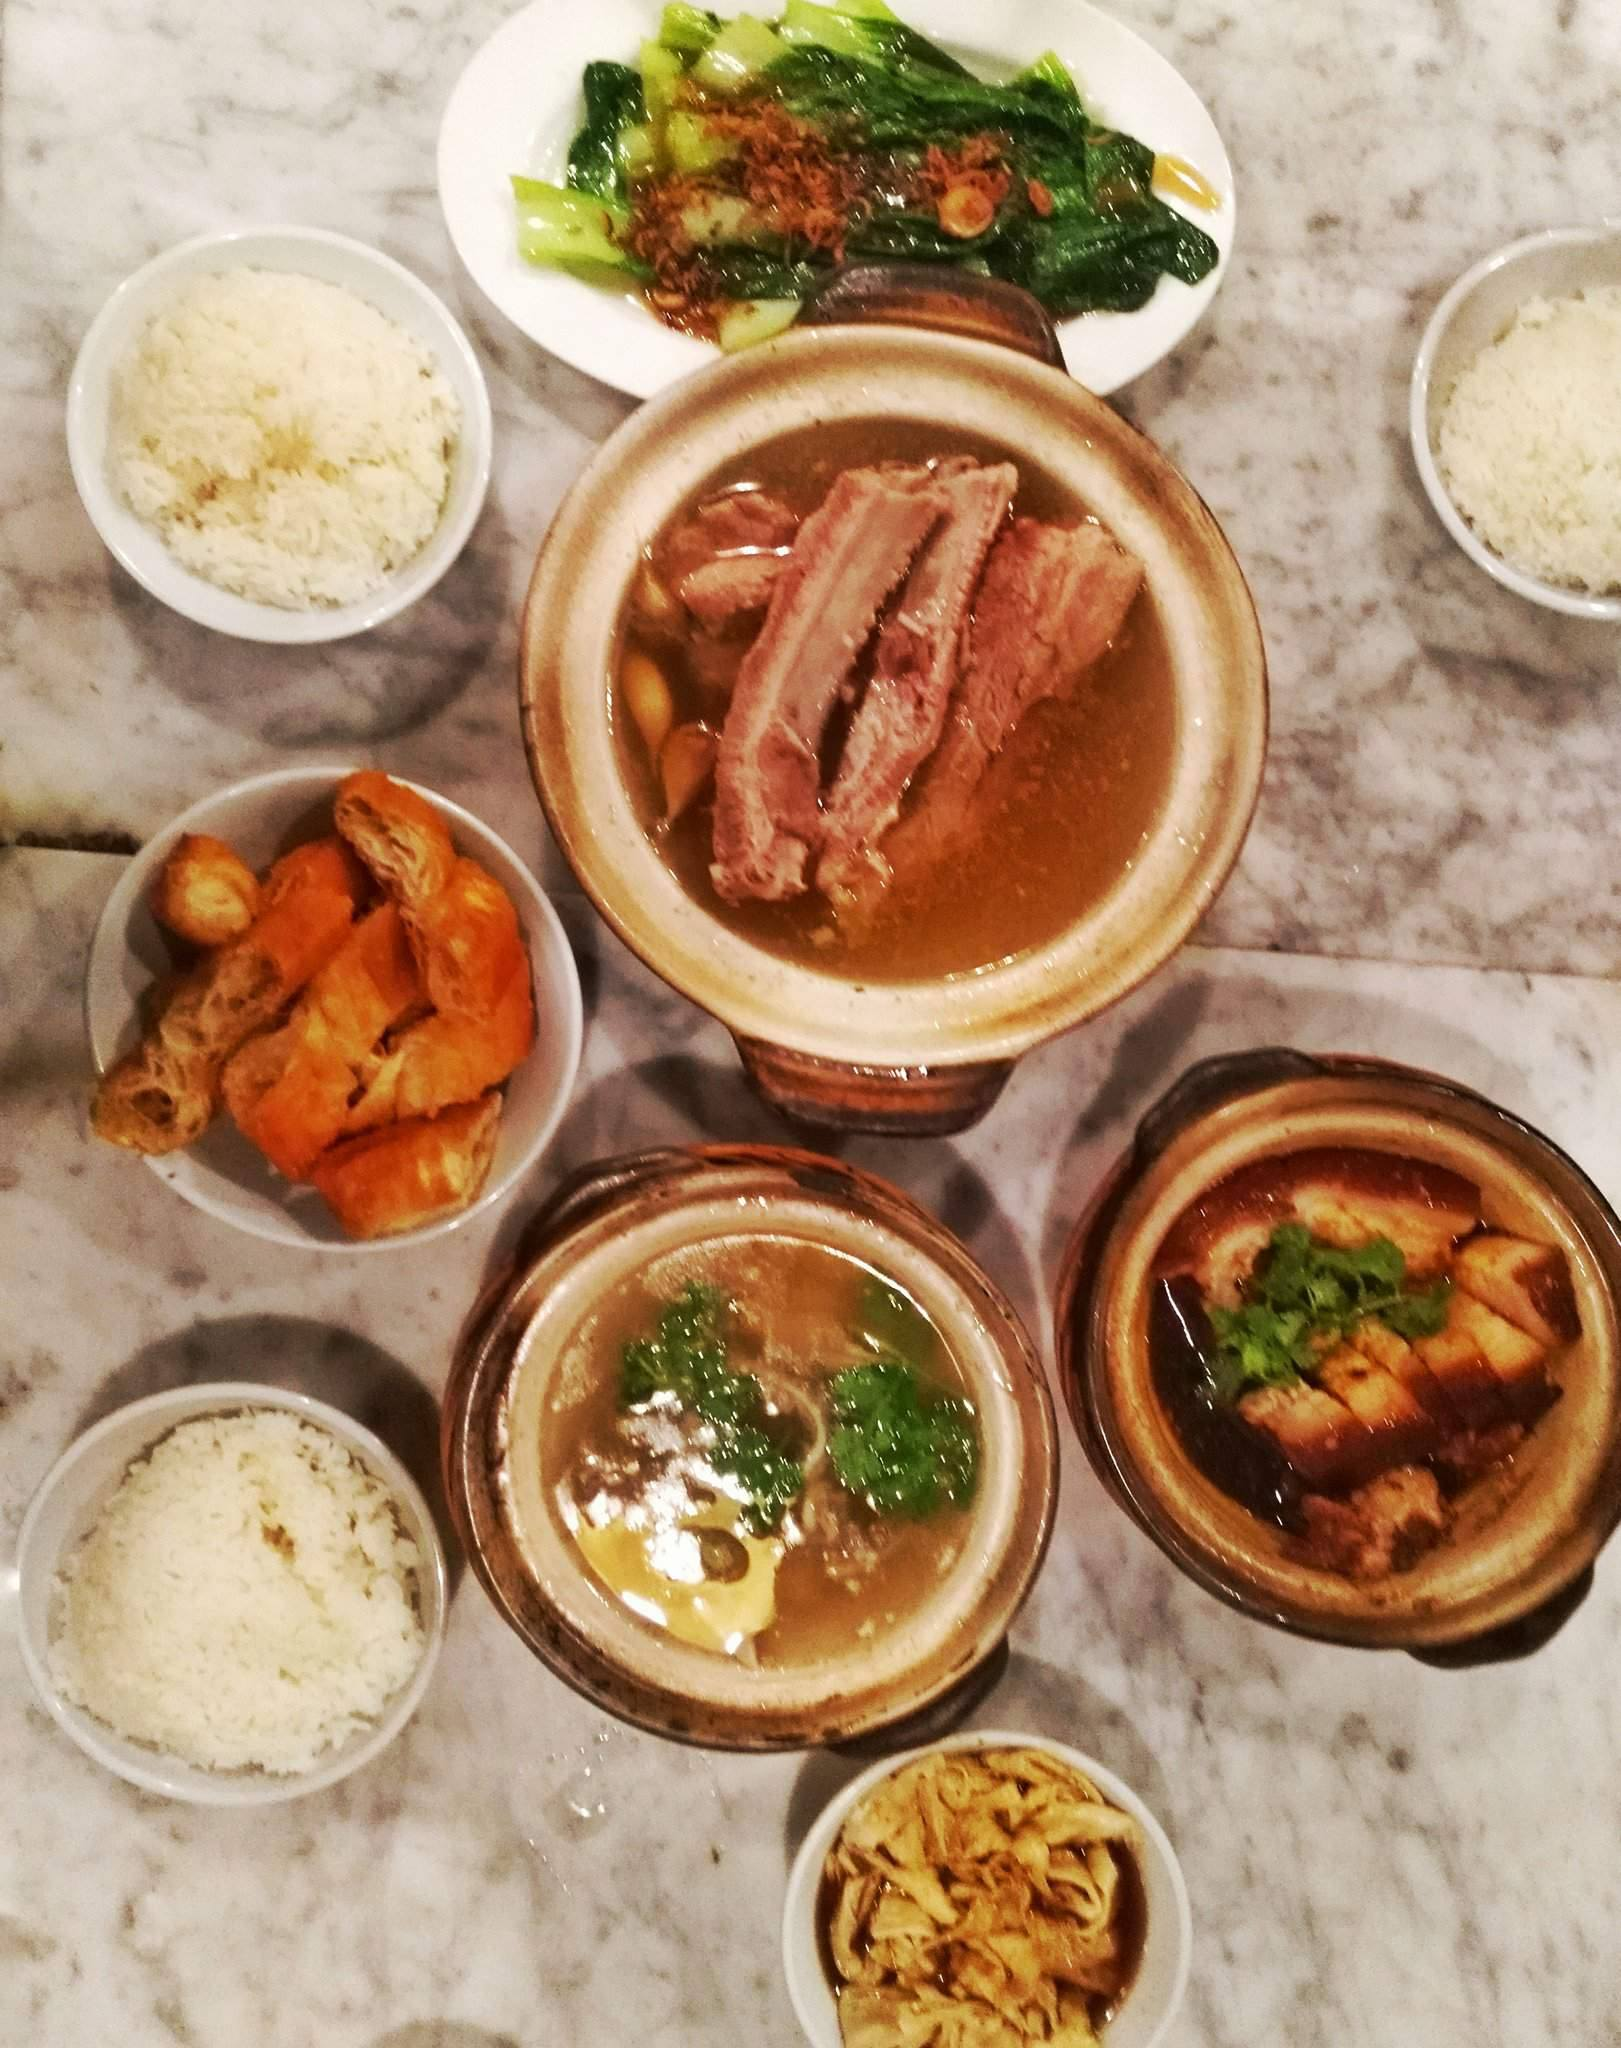 Singapore can't miss - Eat Bak Kut Teh at Xiao Chen Gu Shi